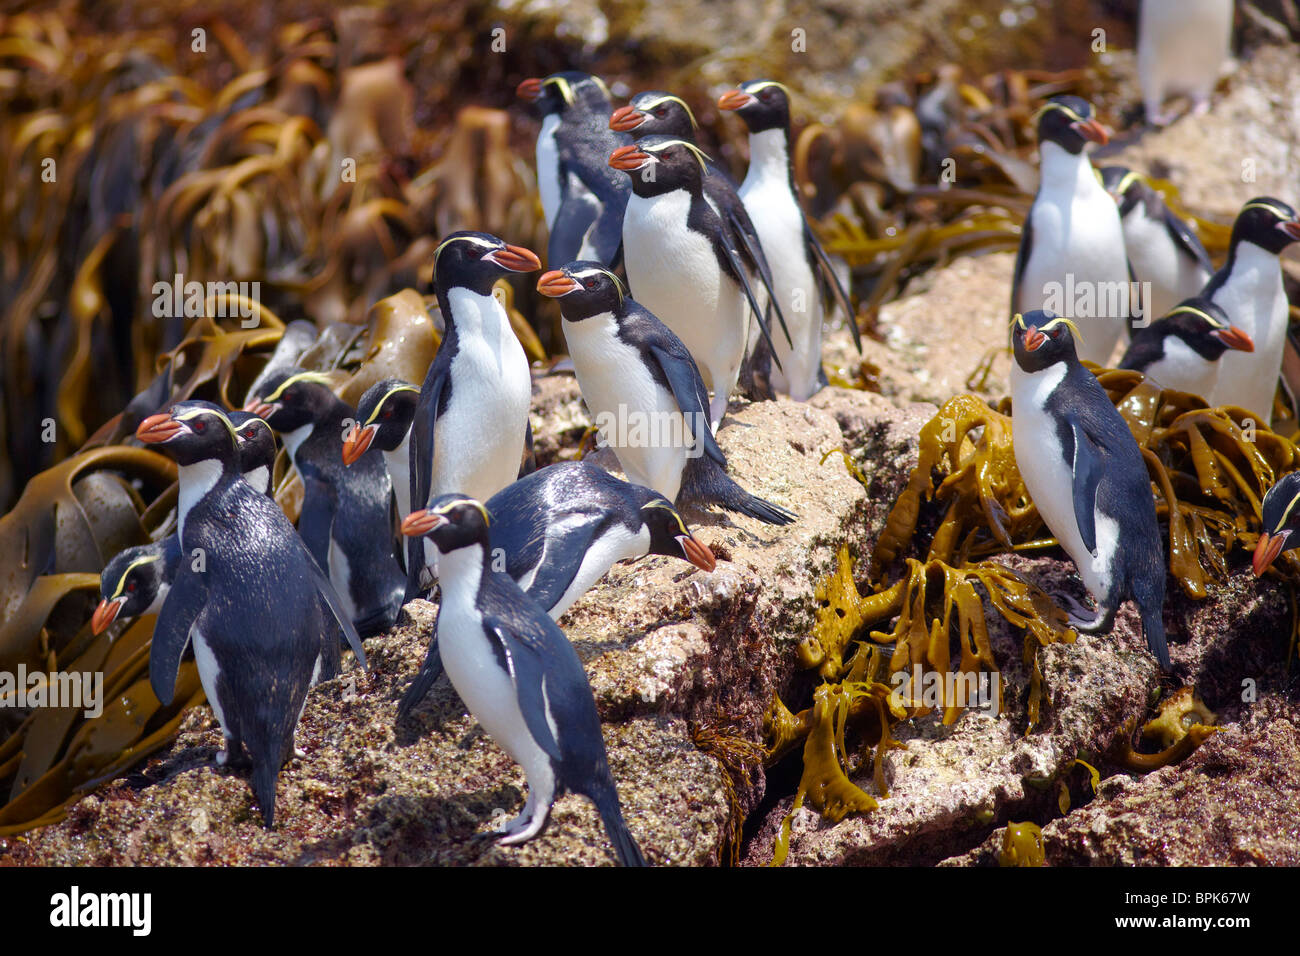 Snares Penguins gathering on the rocks - Stock Image